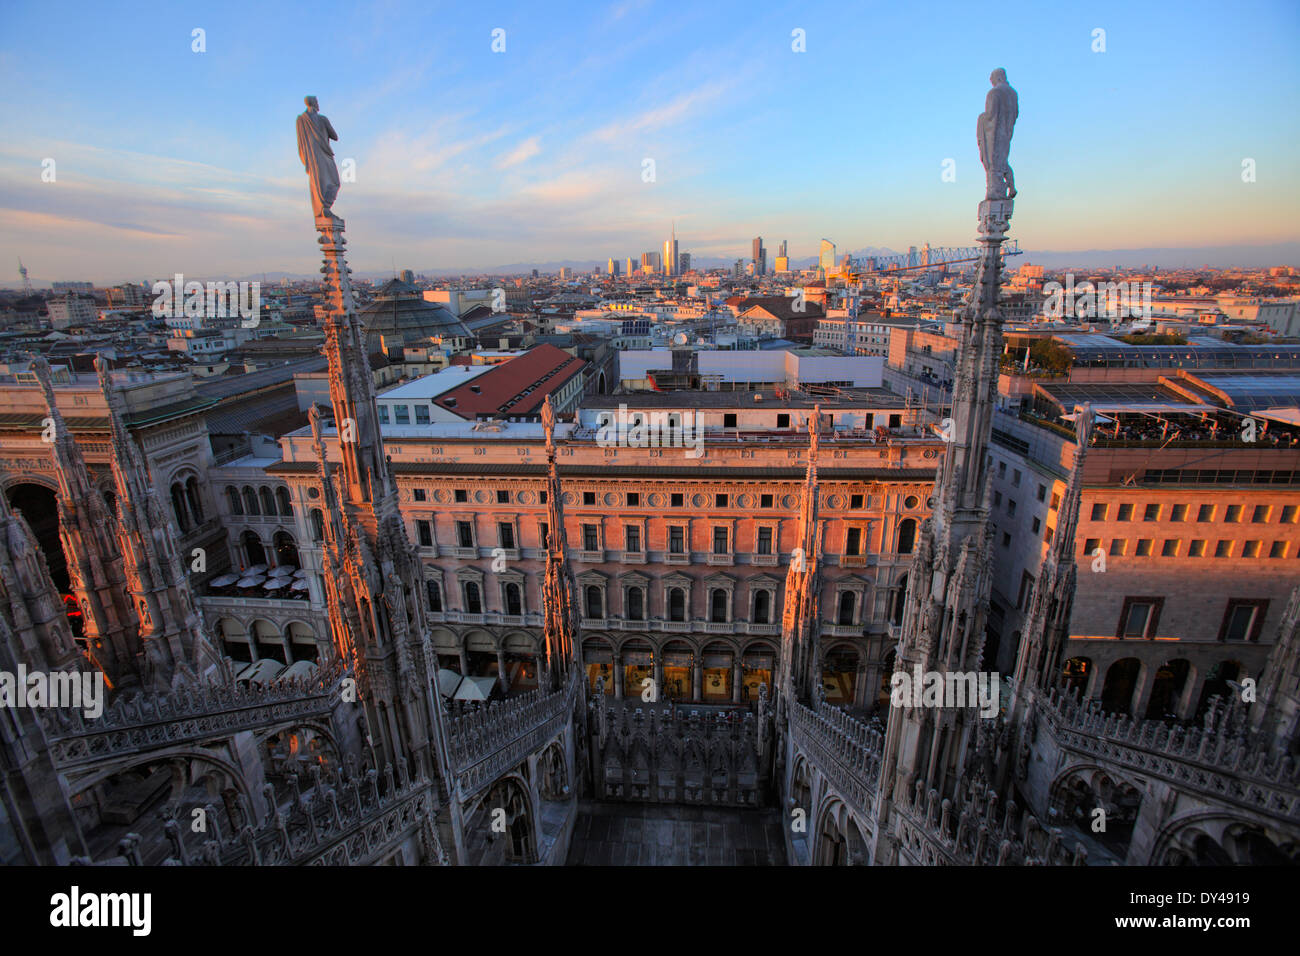 Cityscape of Milan from the top of the Cathedral (Duomo), Milan, Italy - Stock Image